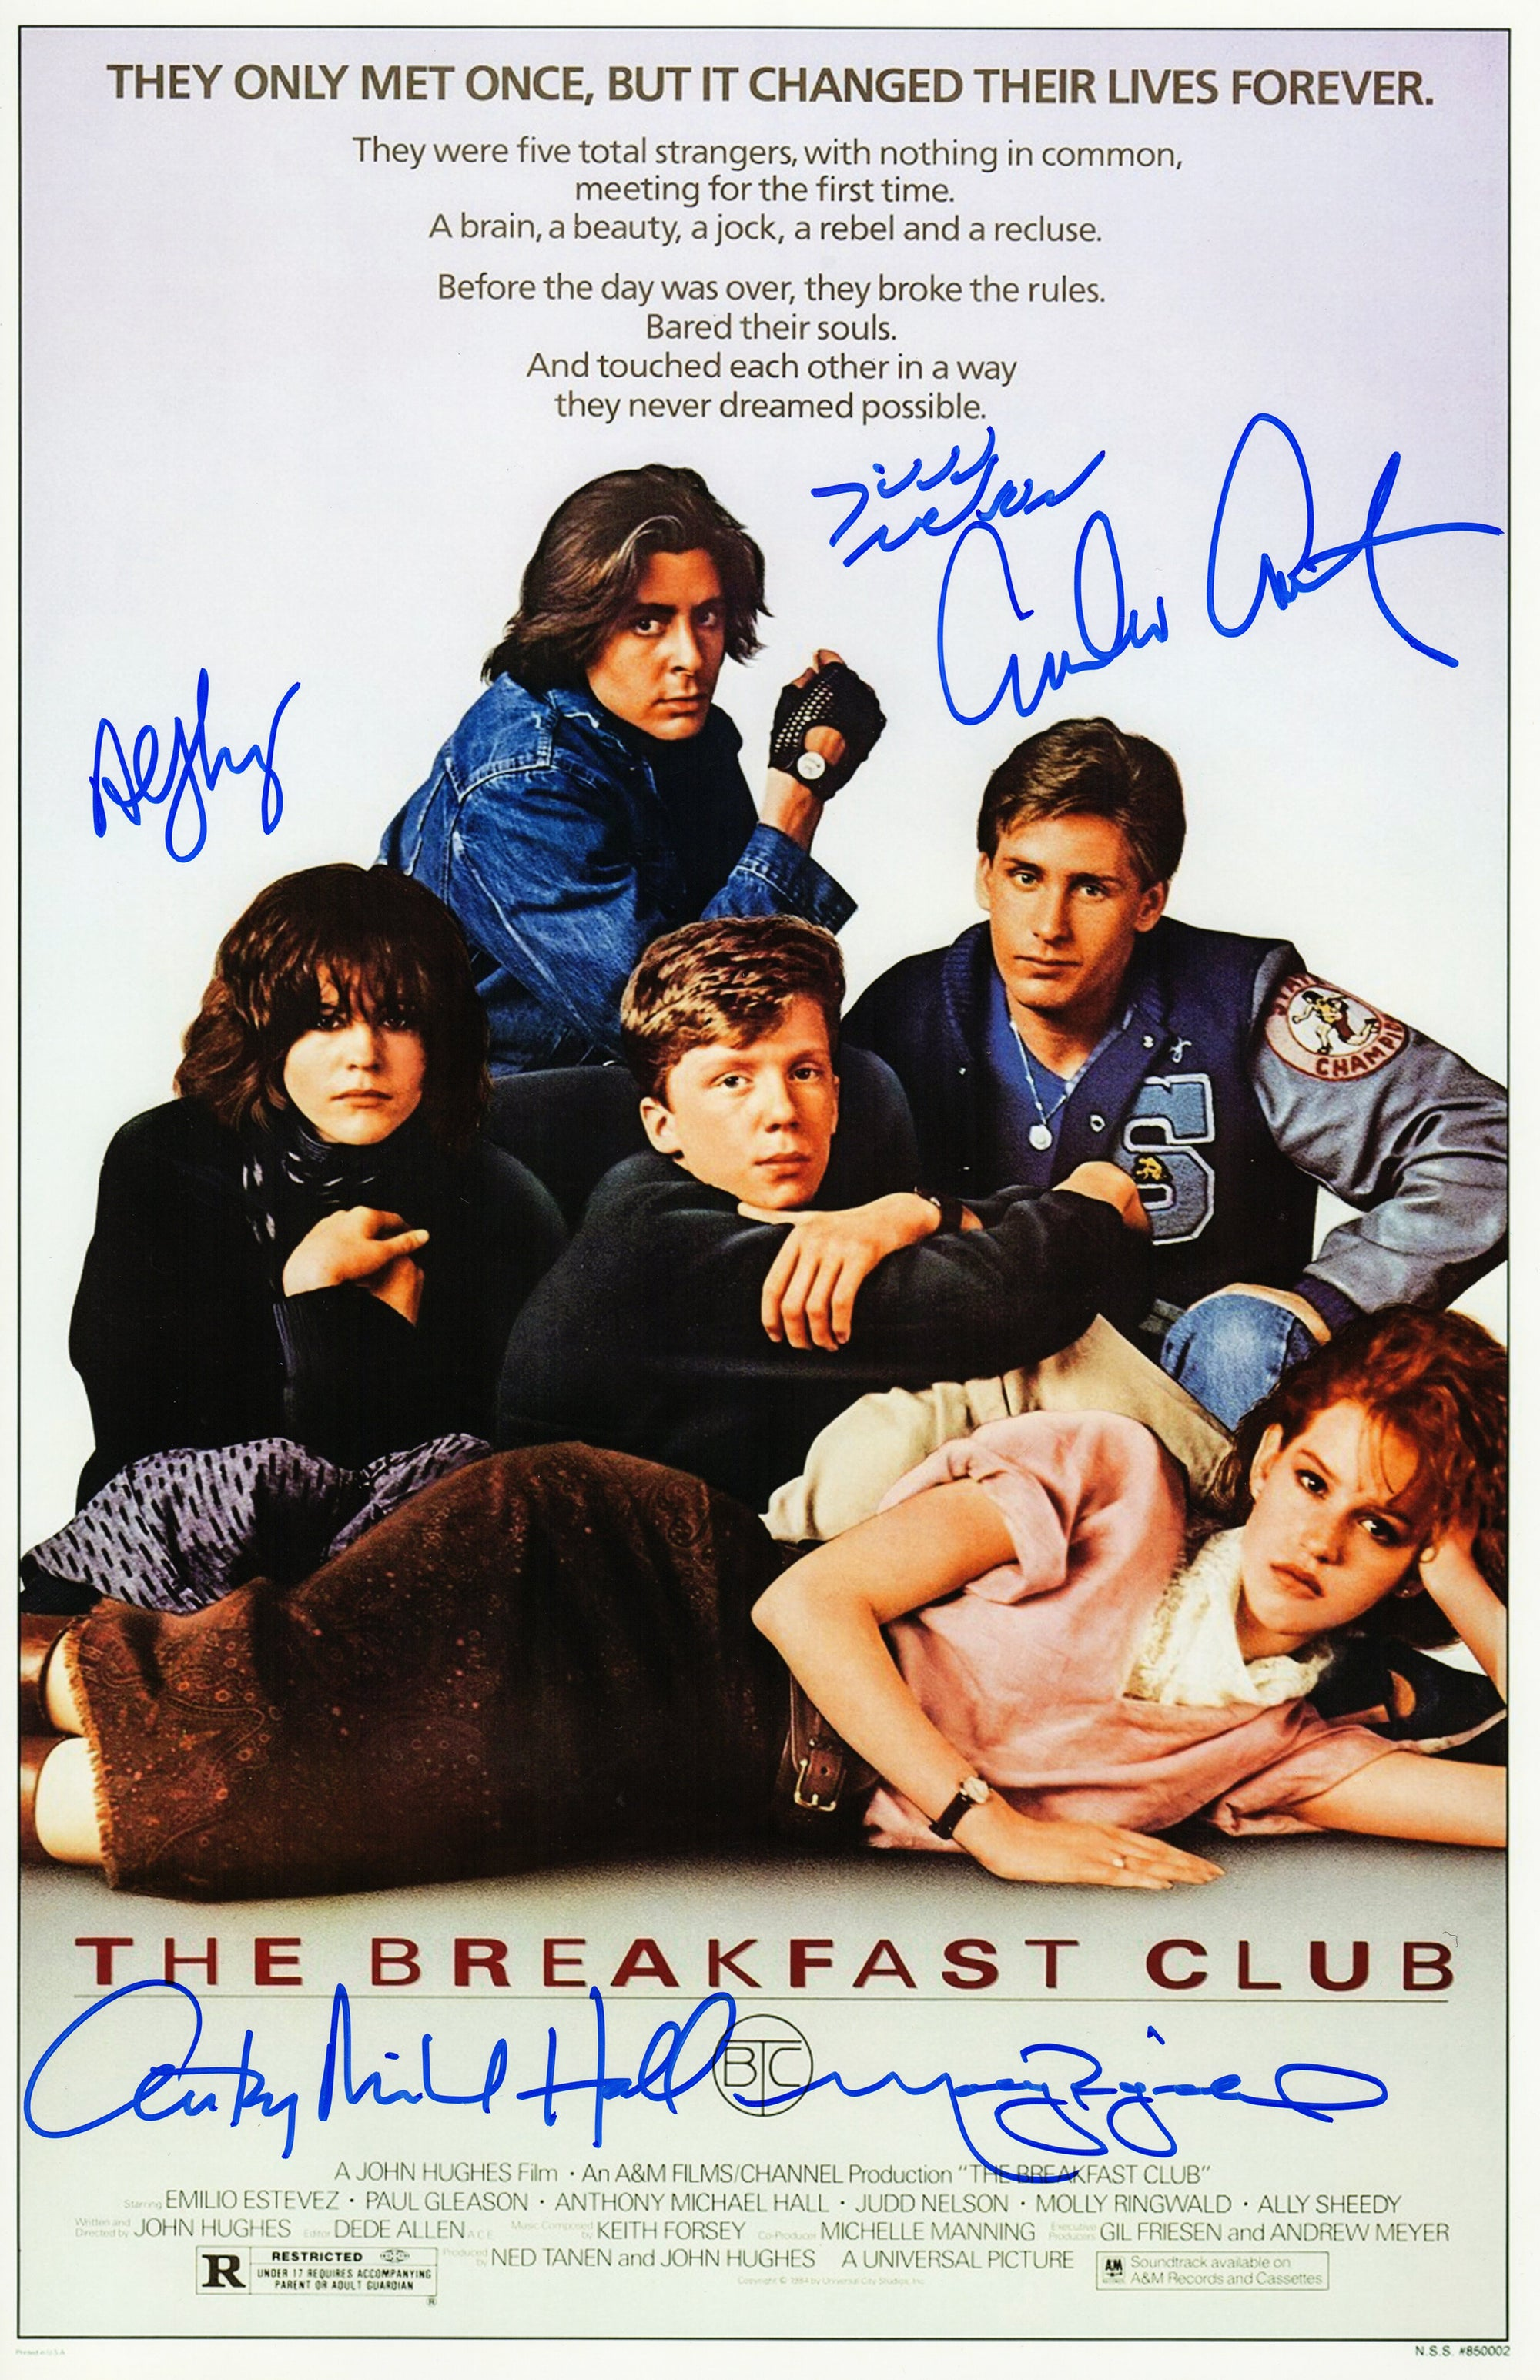 The Breakfast Club Cast Signed The Breakfast Club 11x17 Movie Poster (Estevez, Ringwald, Nelson, Hall, Sheedy) PSM-Powers Sports Memorabilia